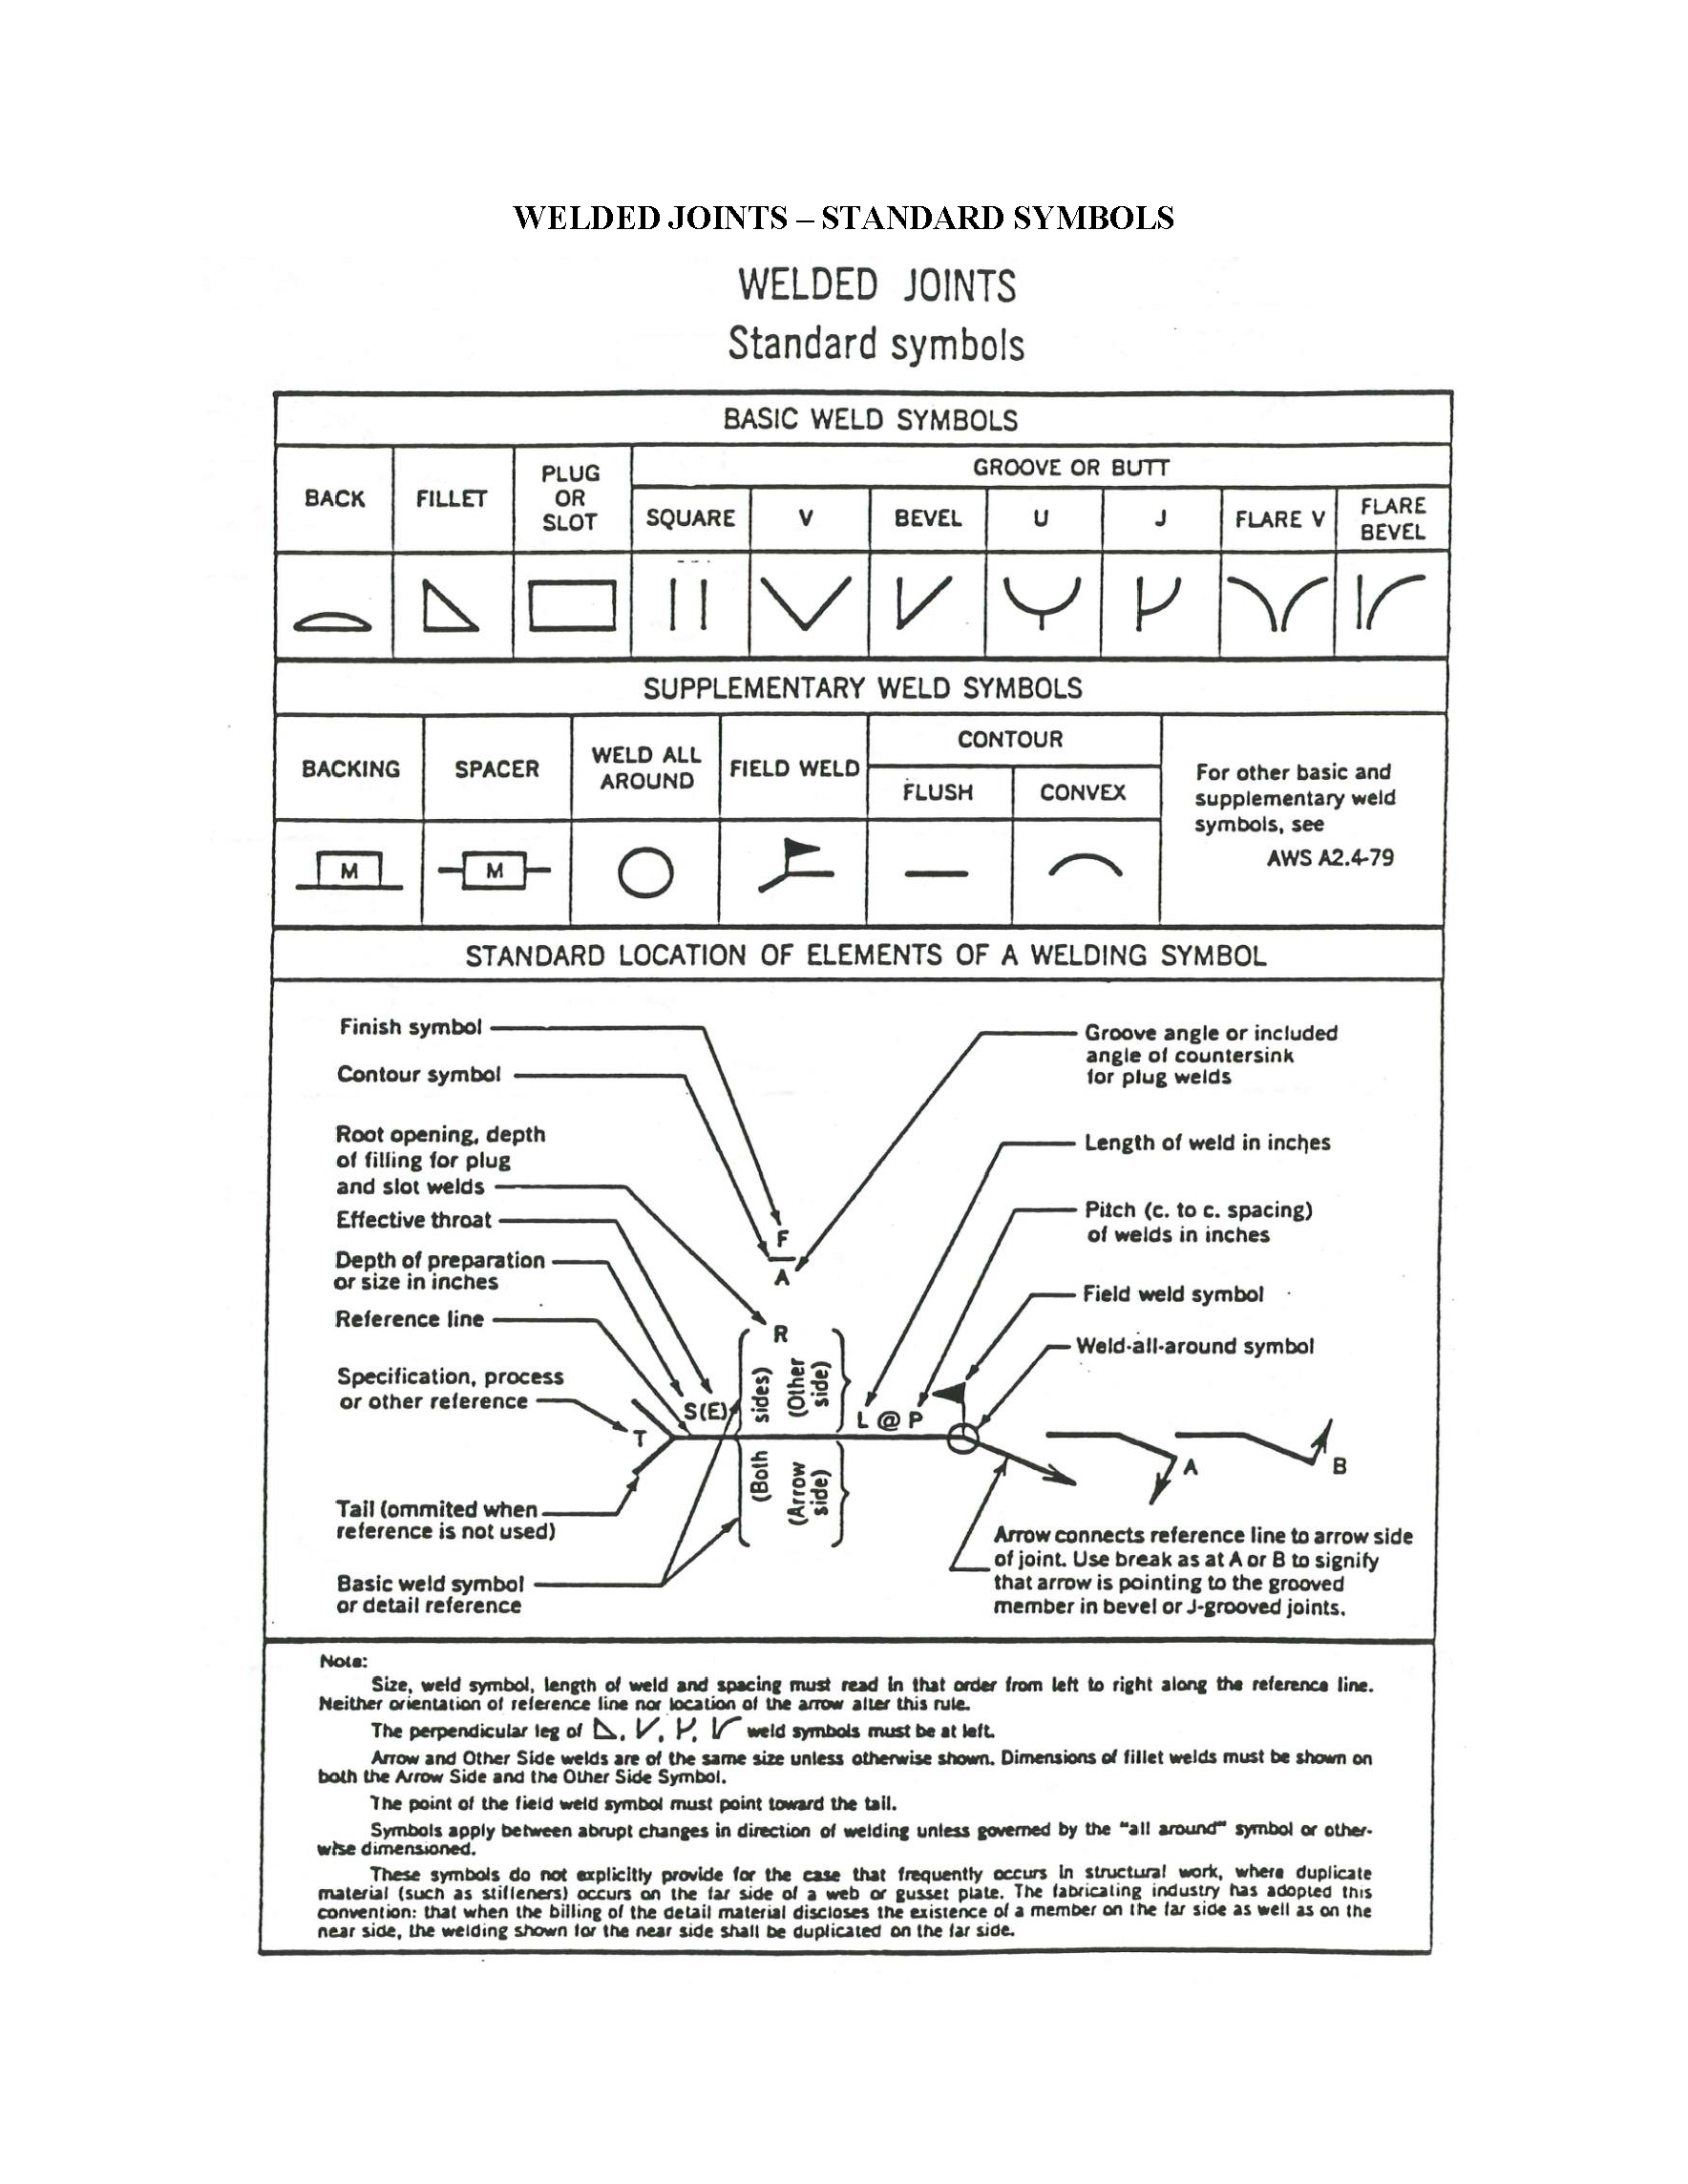 Construction manual reference docs all documents welded joints standard symbols buycottarizona Image collections